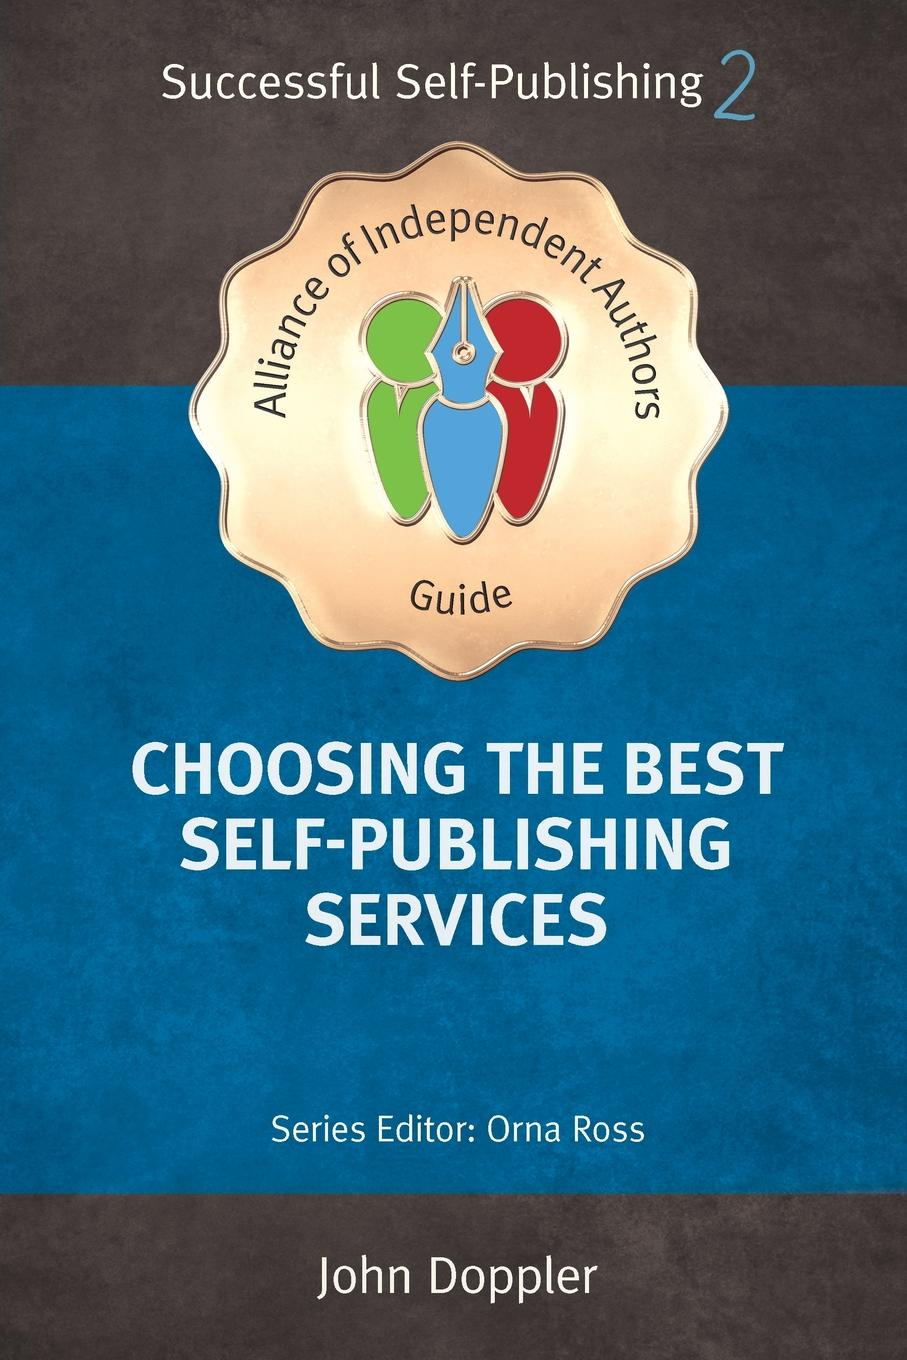 Jim Giammatteo, John Doppler Choosing the Best Self-Publishing Companies and Services. How To Self-Publish Your Book you choose